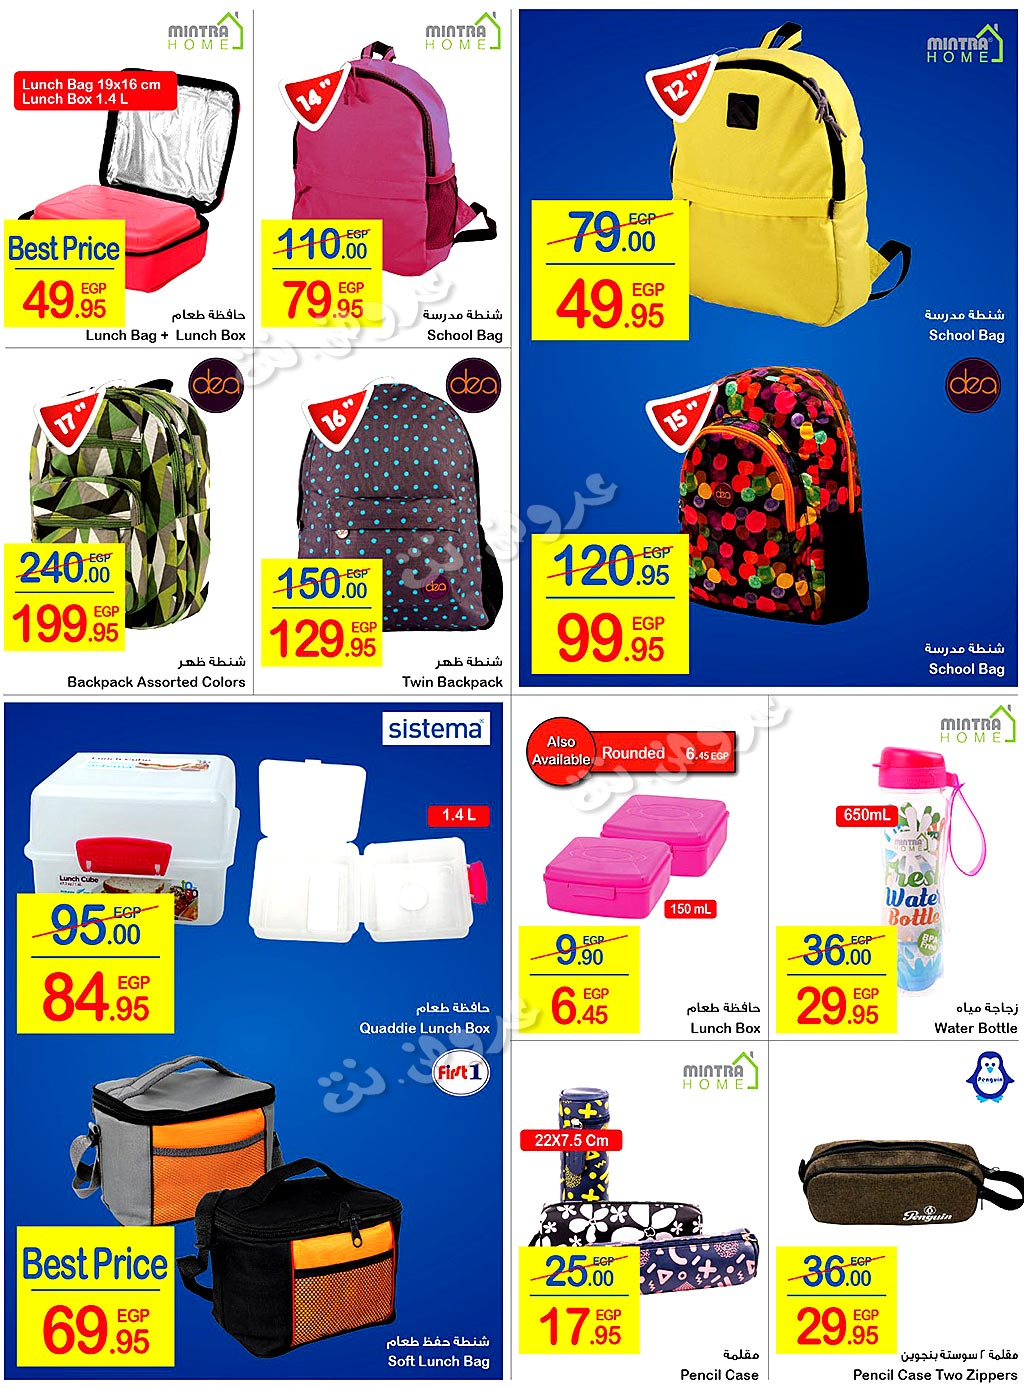 carrefour offers from 14aug to 31aug 2019 page number 6 عروض كارفور من 14 أغسطس حتى 31 أغسطس 2019 صفحة رقم 6